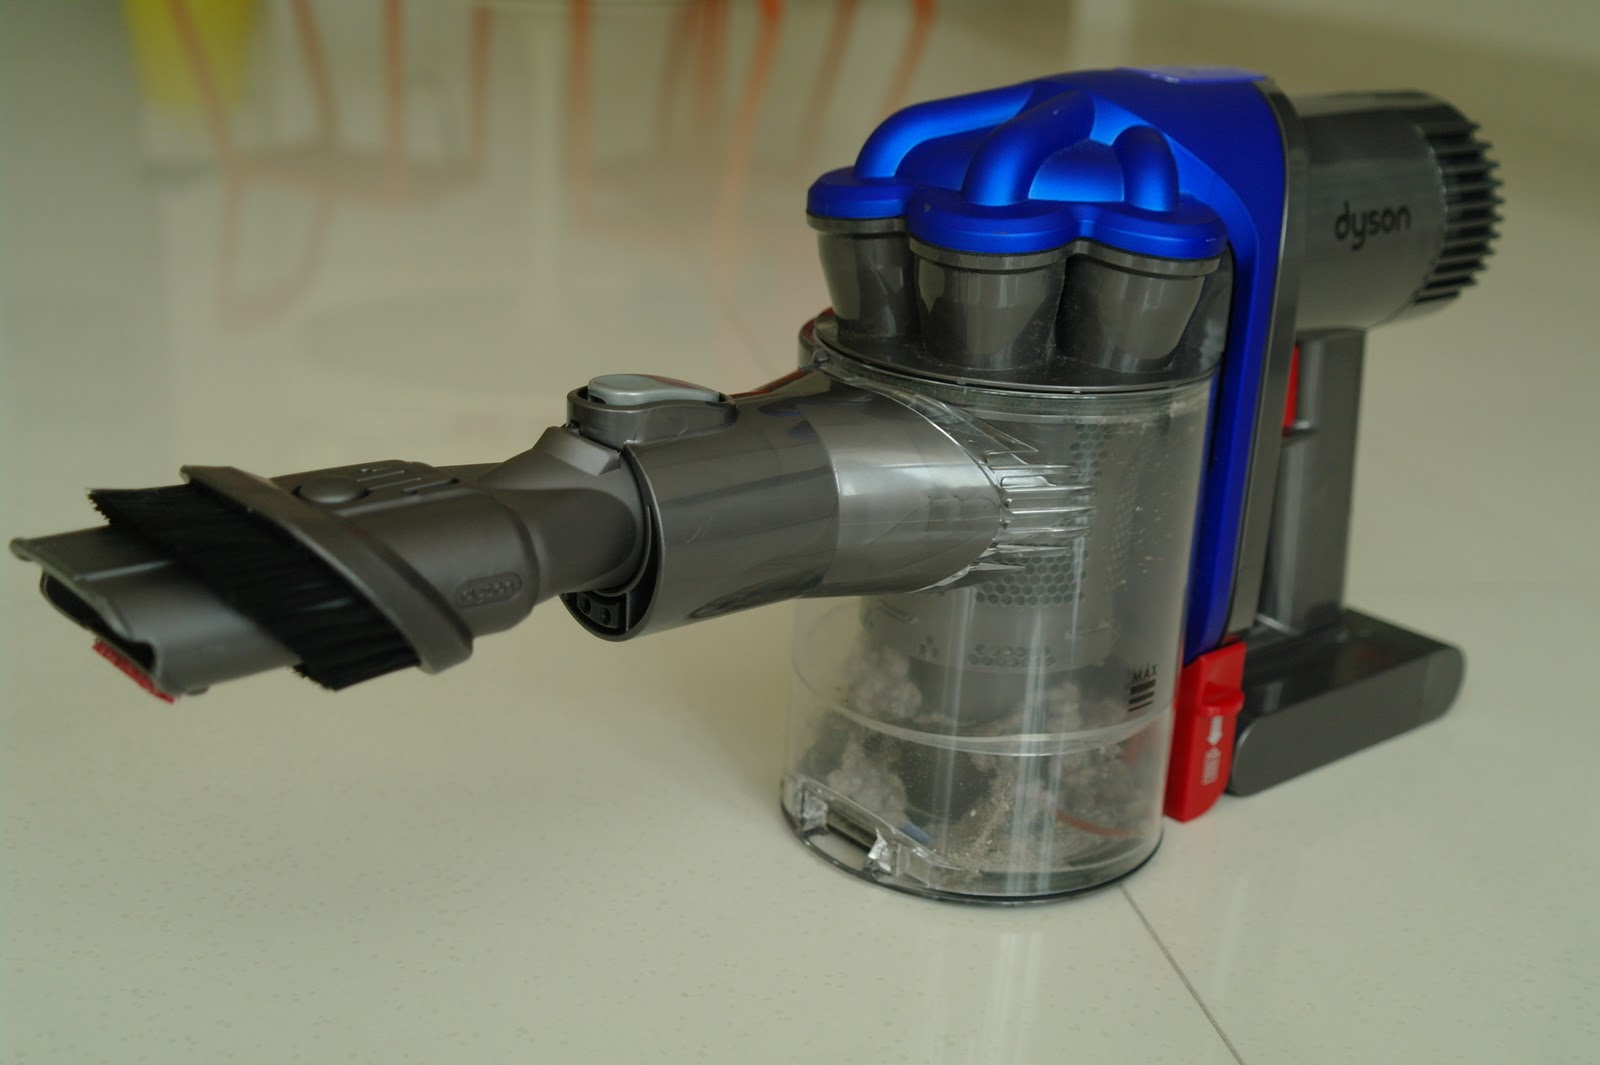 dyson vacuum cleaner case study See all case studies the business frederic cassir's six mcdonald's restaurants in quebec canada are part of one of the largest fast-food chains in the world.